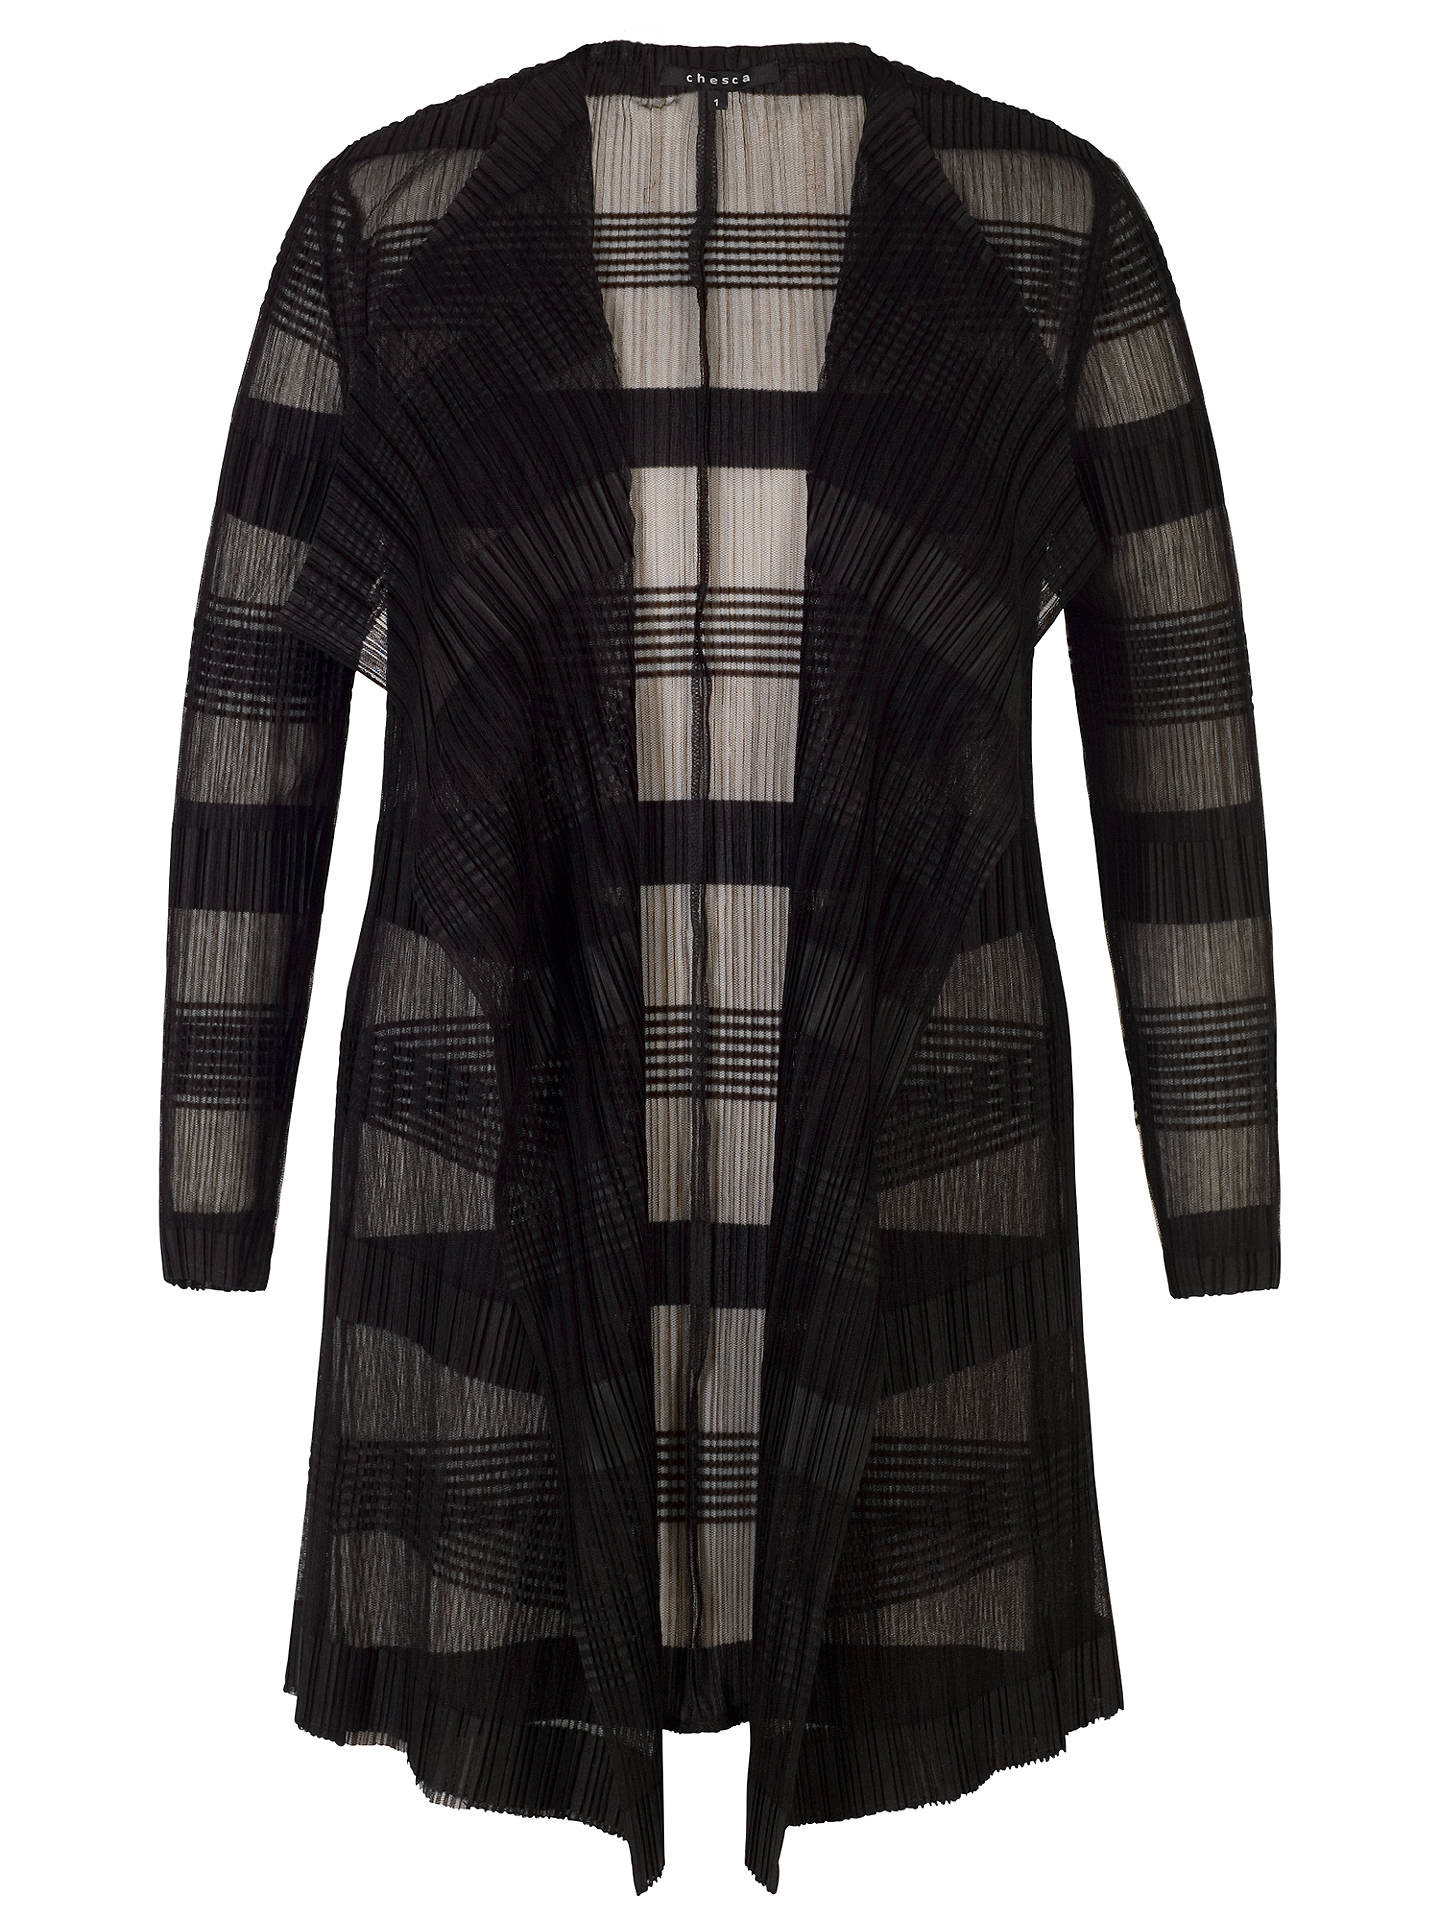 BuyChesca Sheer Stripe Crush Pleat Jacket, Black, 12-14 Online at johnlewis.com